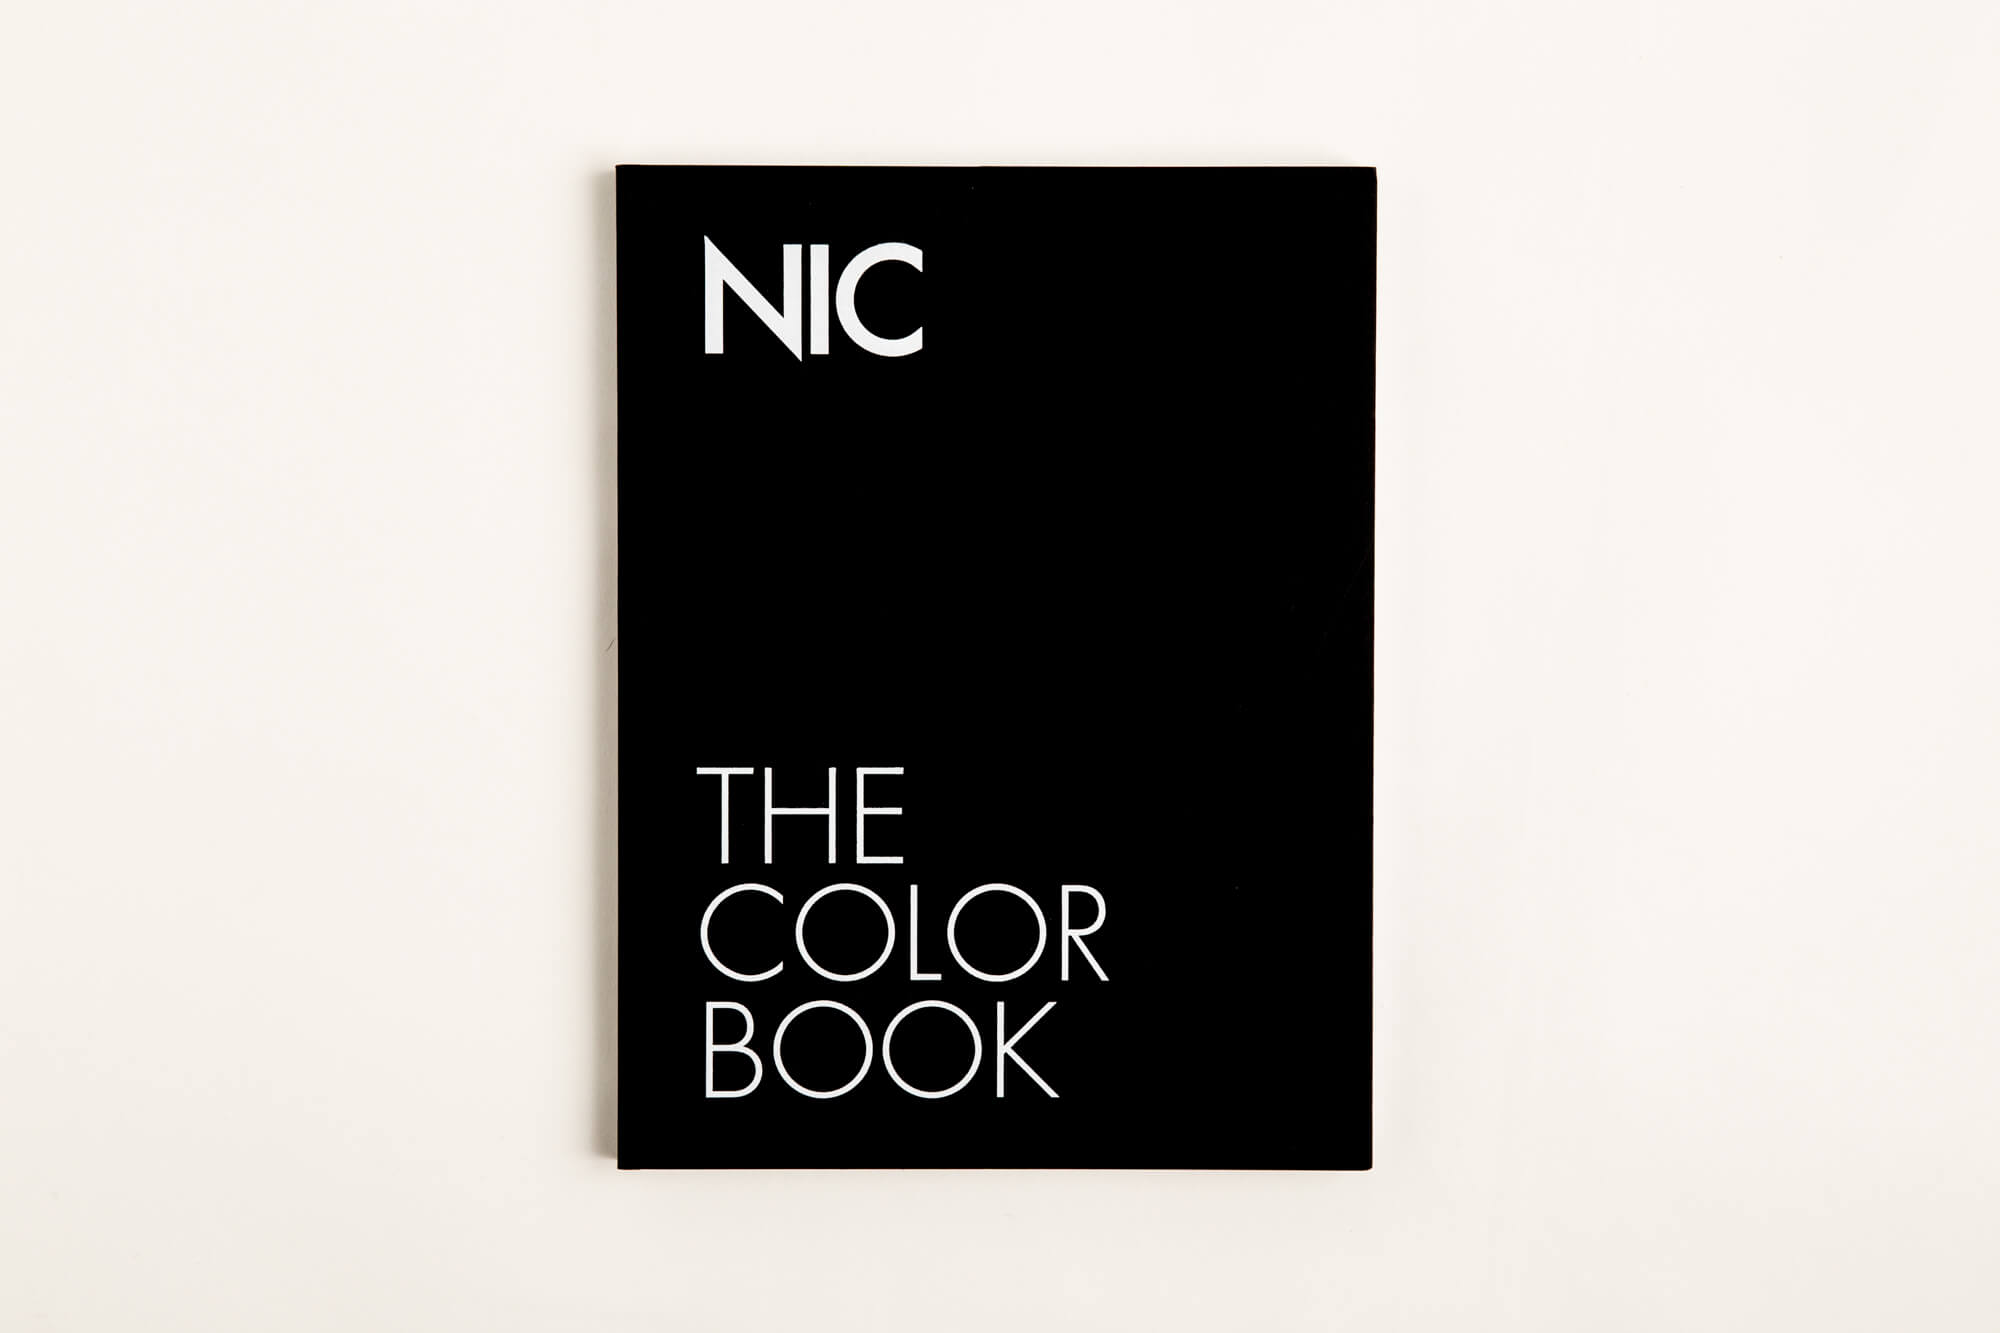 Nic – The Color Book